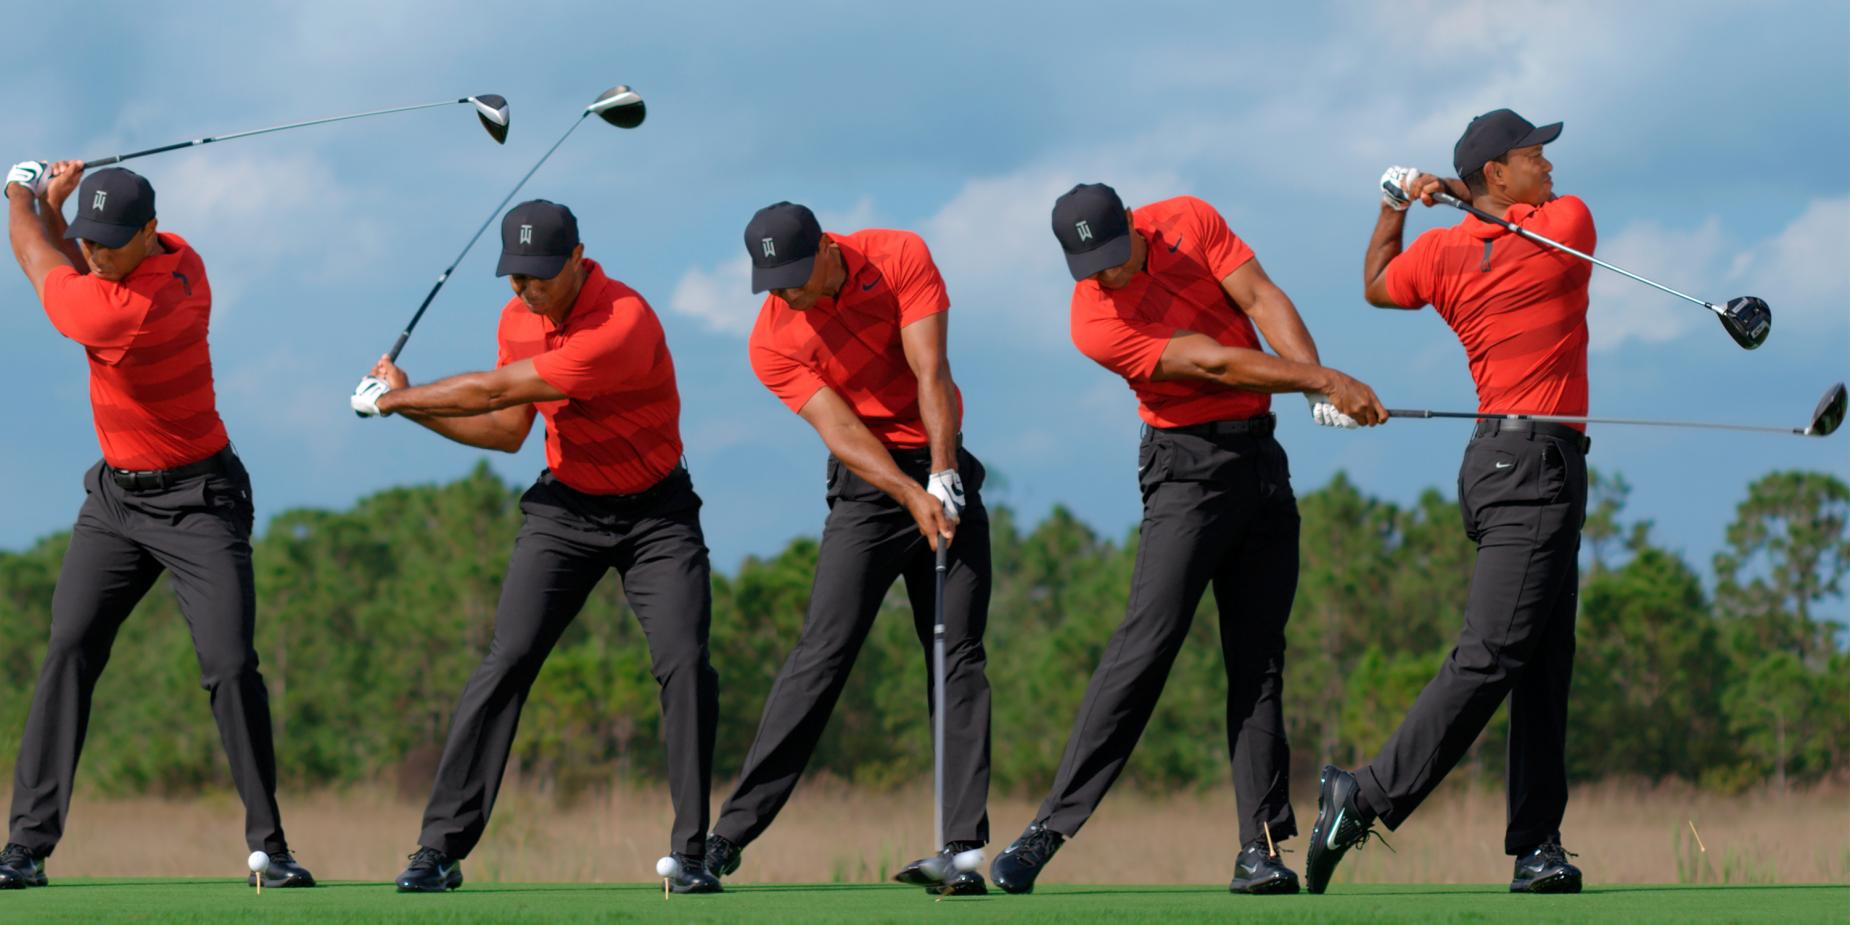 Tiger-Woods-swing-sequence-tout.jpg